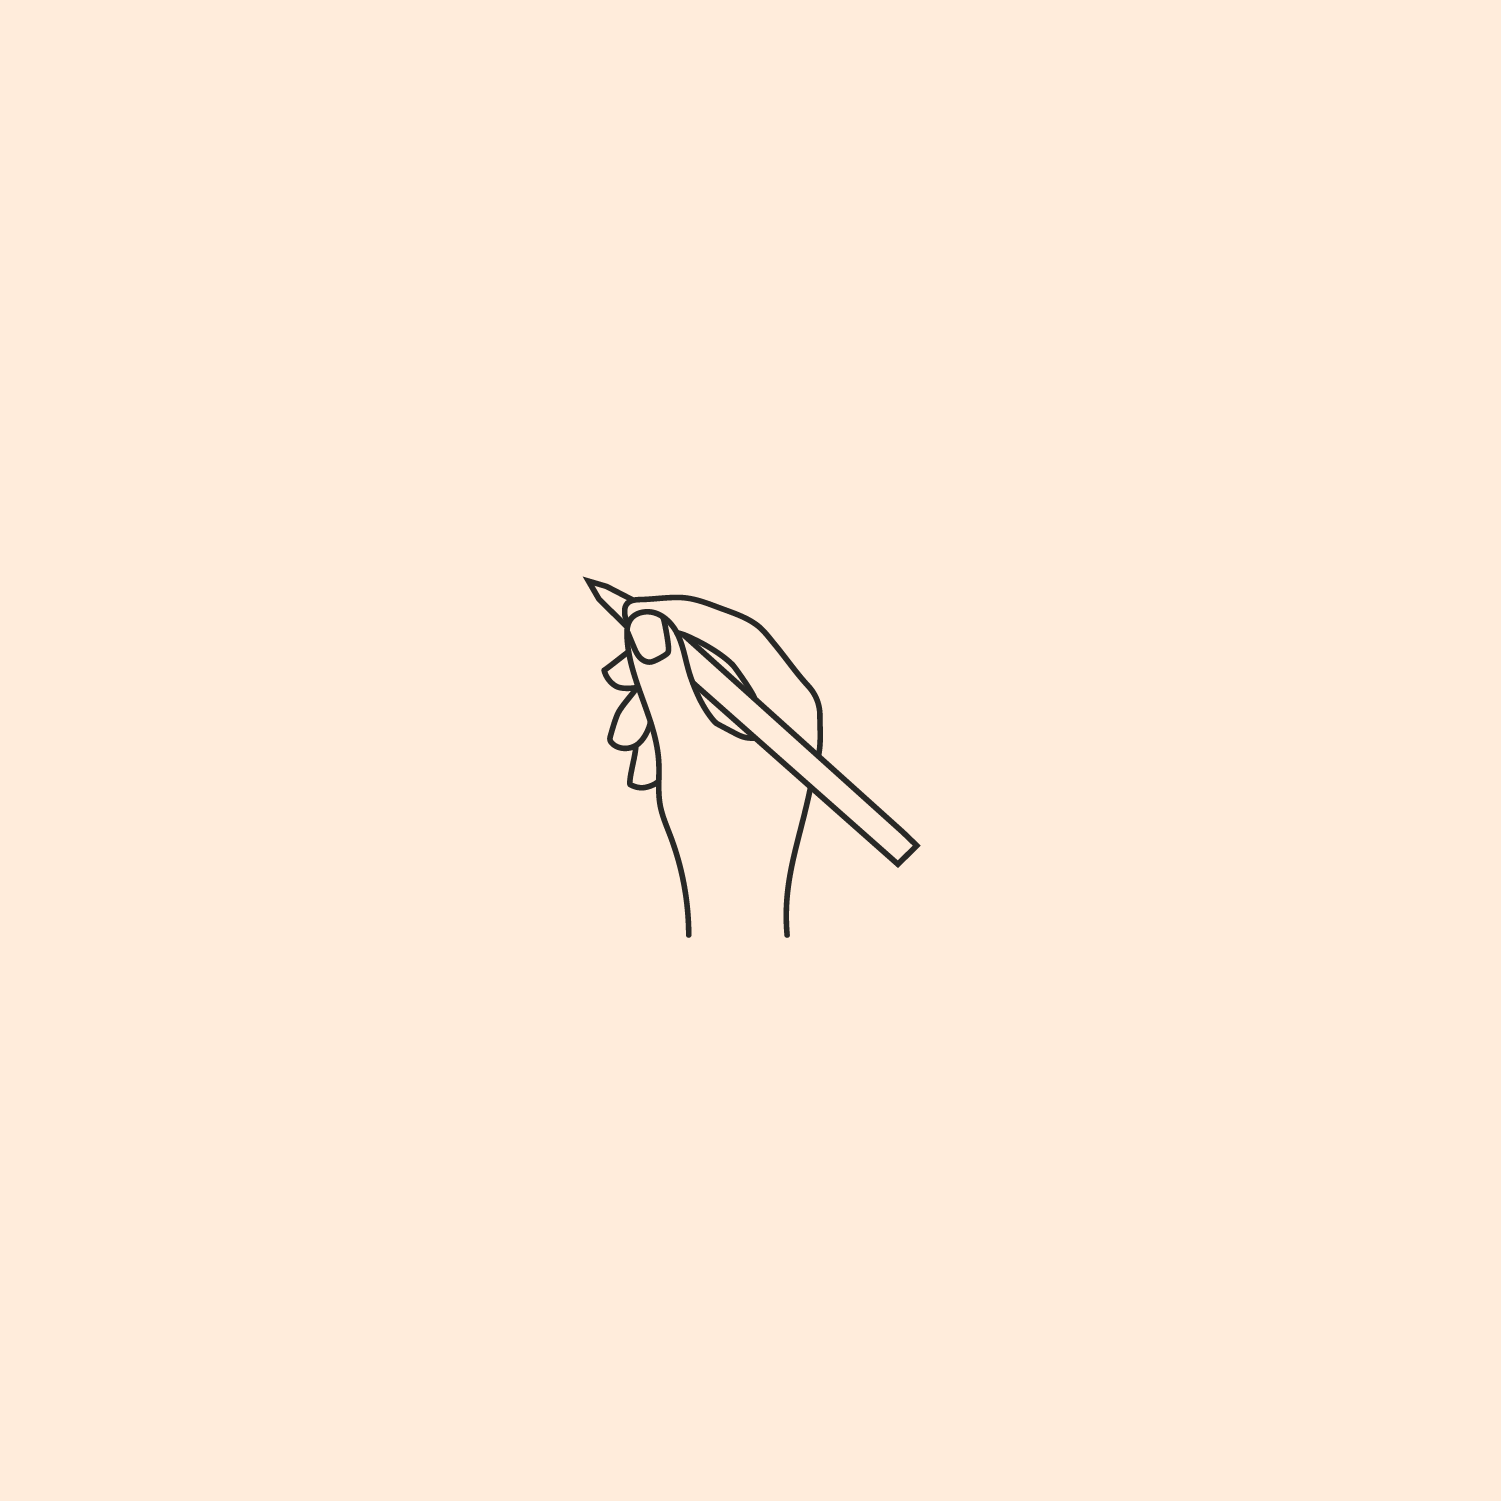 Line icon of hand with pencil for Zafira Rajan by Salt Design Co.